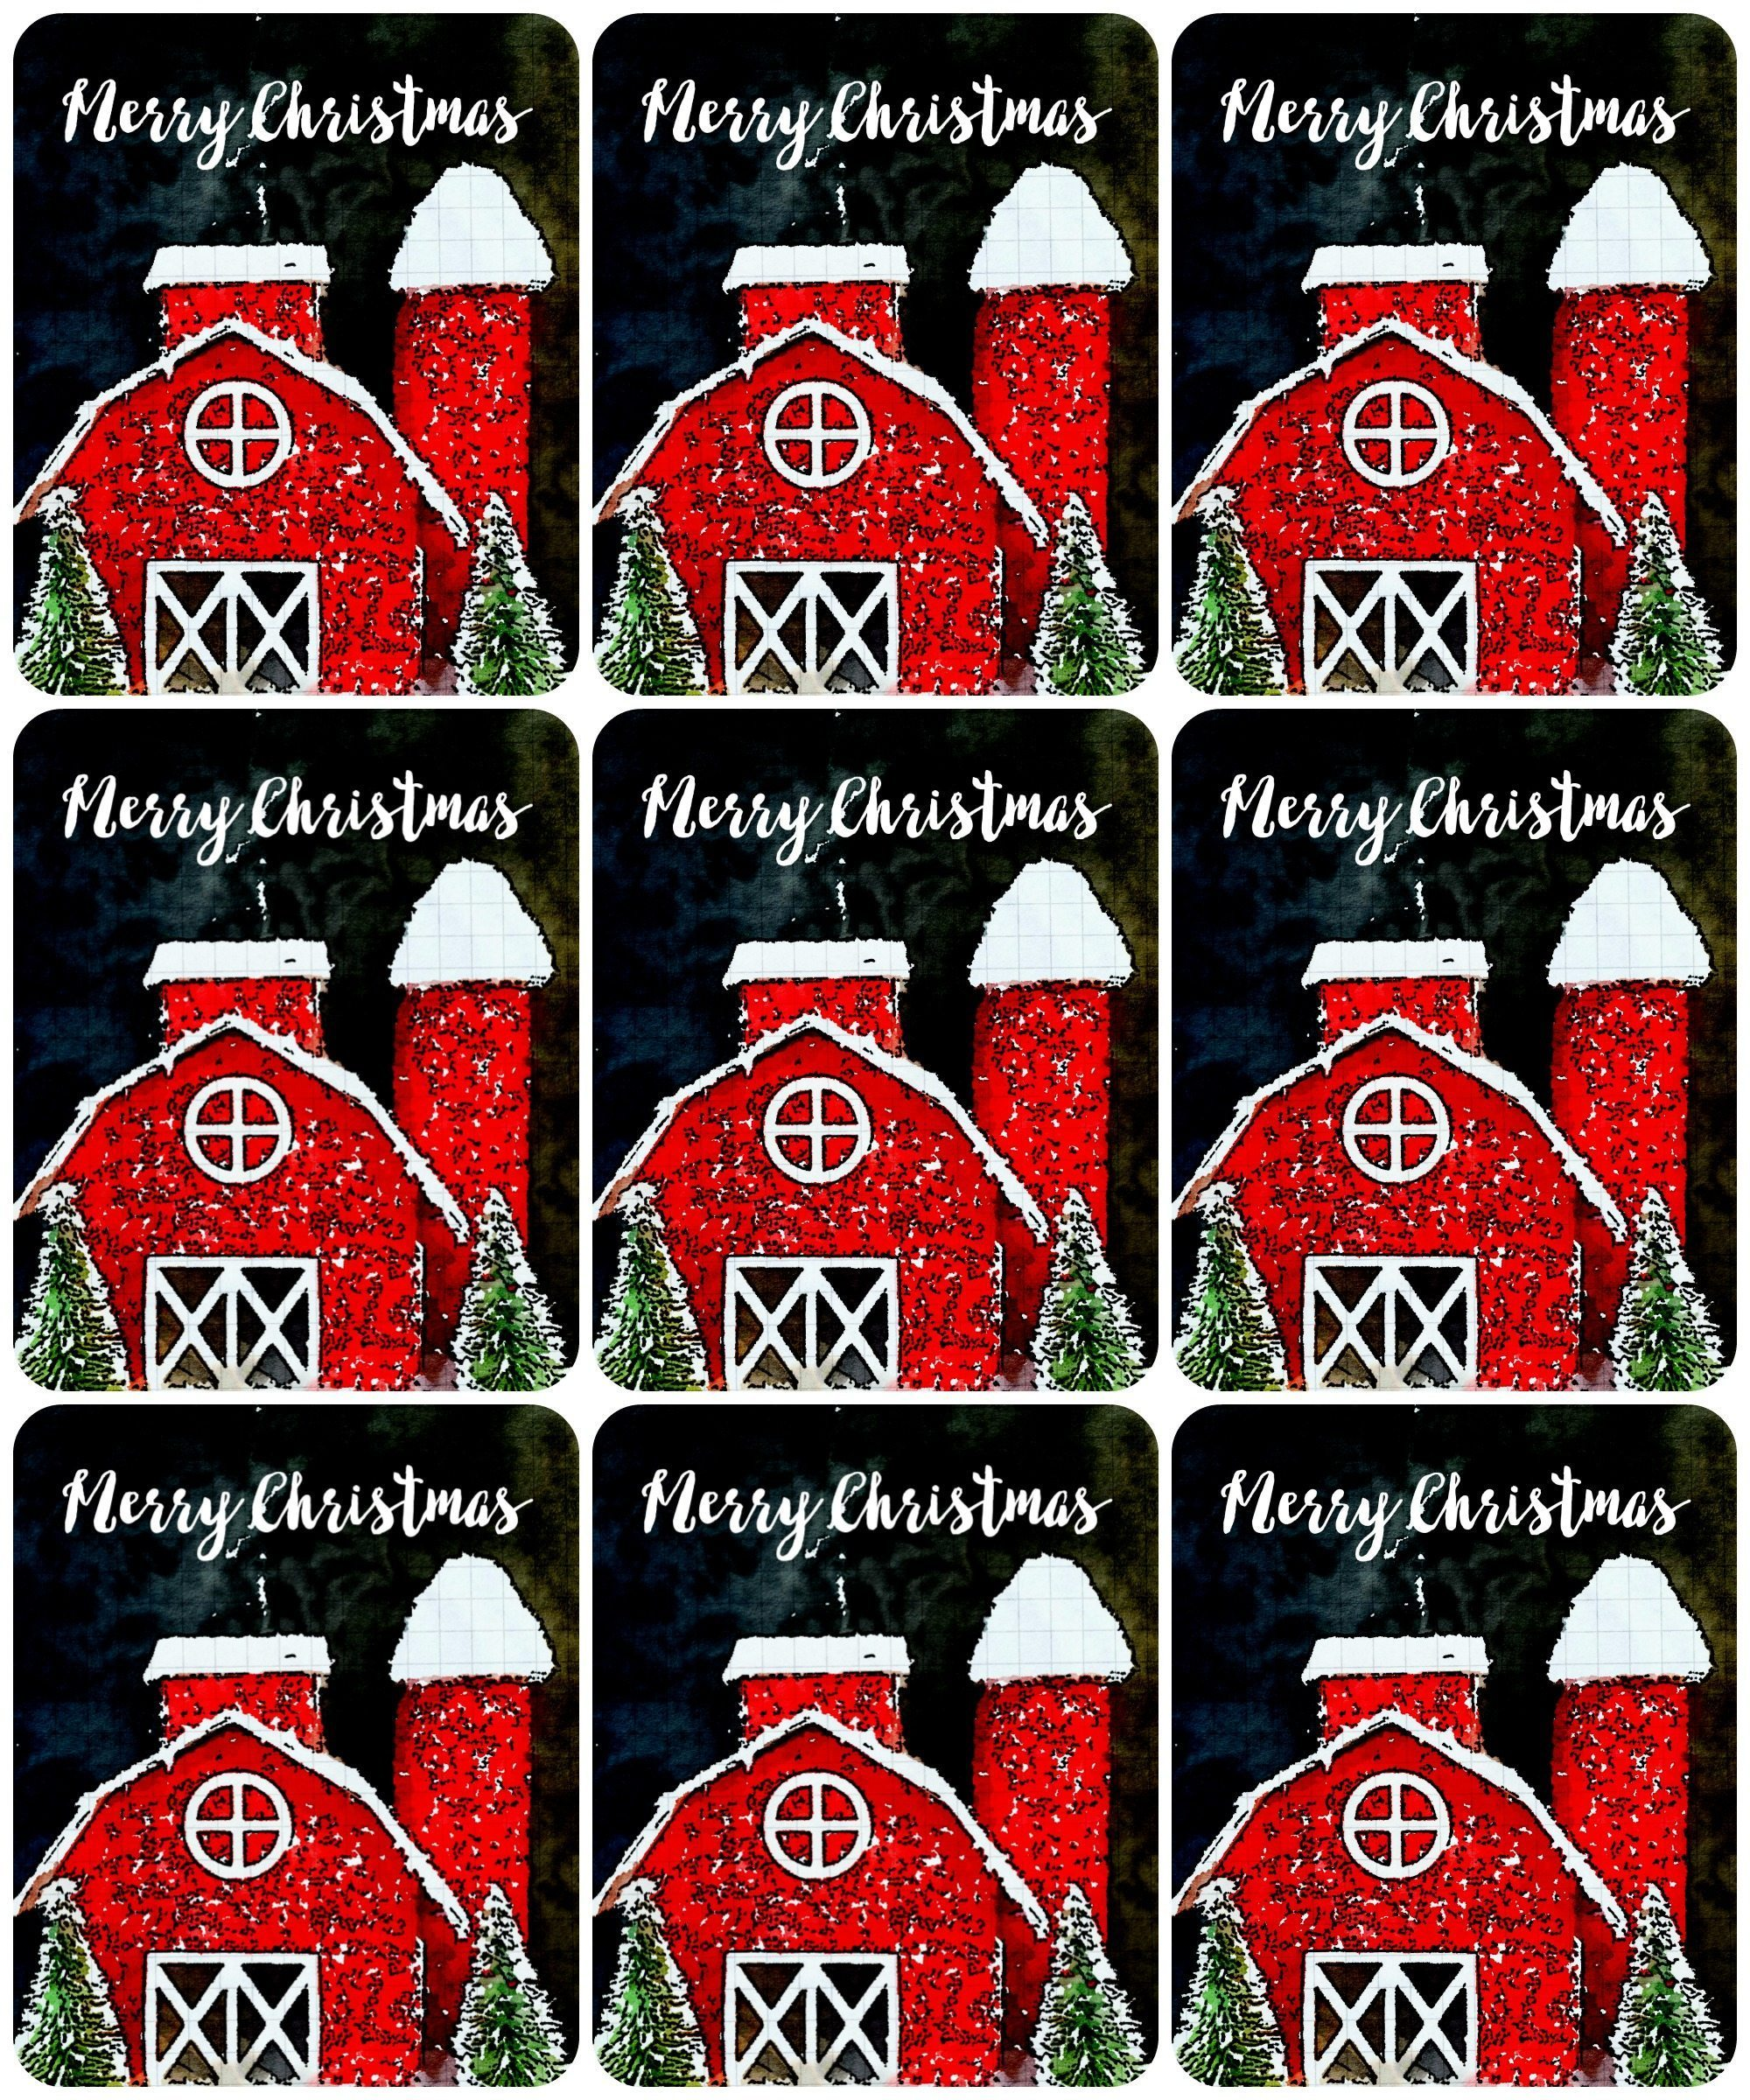 merry-christmas-red-barn-gift-tags